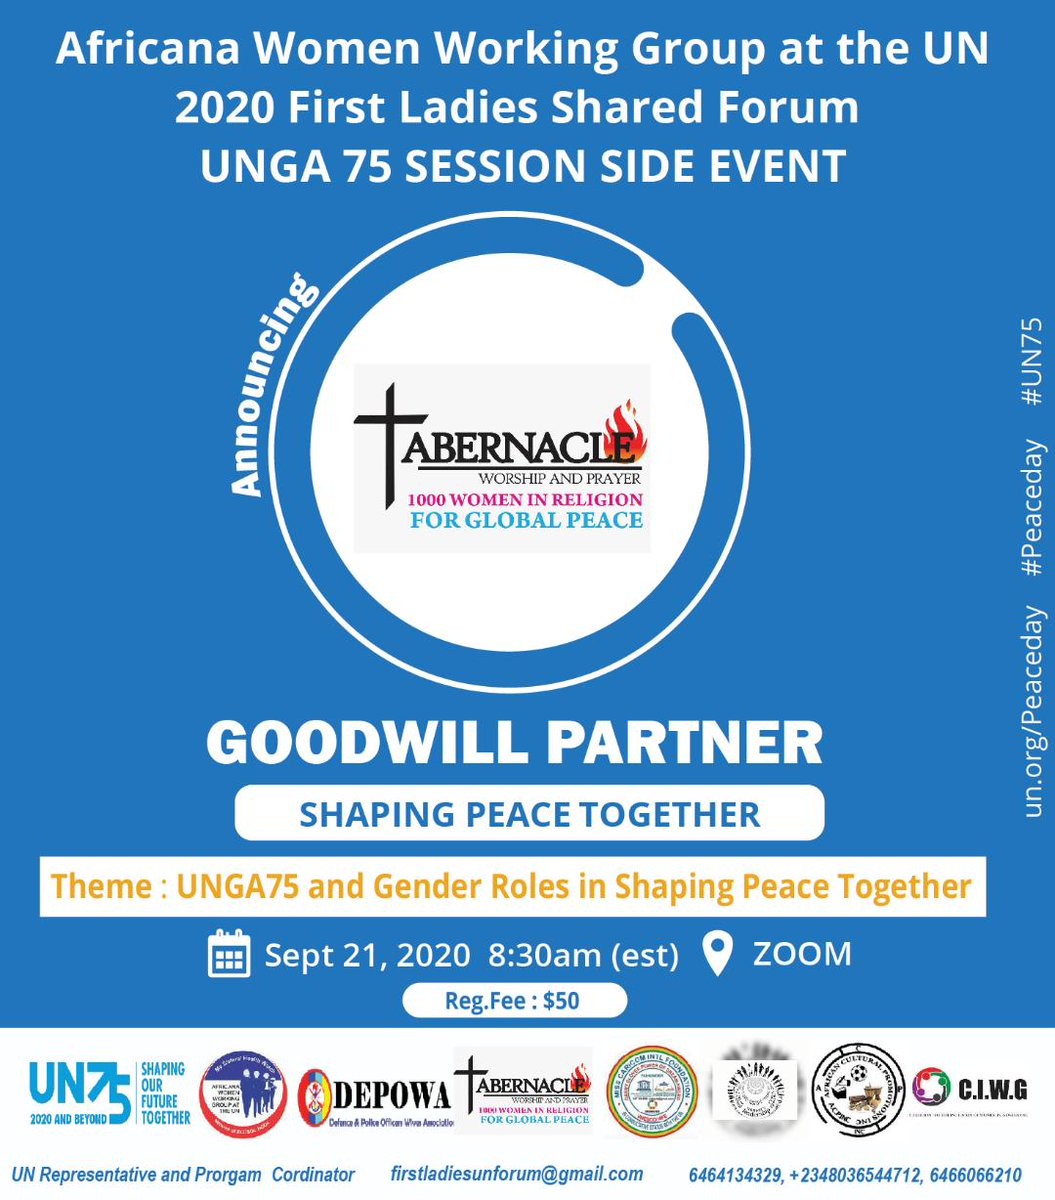 We are proud to share ABERNACLE (WORSHIP AND PRAYER), as GOODWILL PARTNERS at Africana Women Working Group at the UN 2020, first Ladies Shared Forum   Registration Fees: $50  Where: Zoom Registration Link: https://t.co/RhJkIvuOVH #UN75 #UNPeacekeeping #unpeaceday #PeaceDay https://t.co/xbRlQs3hX2